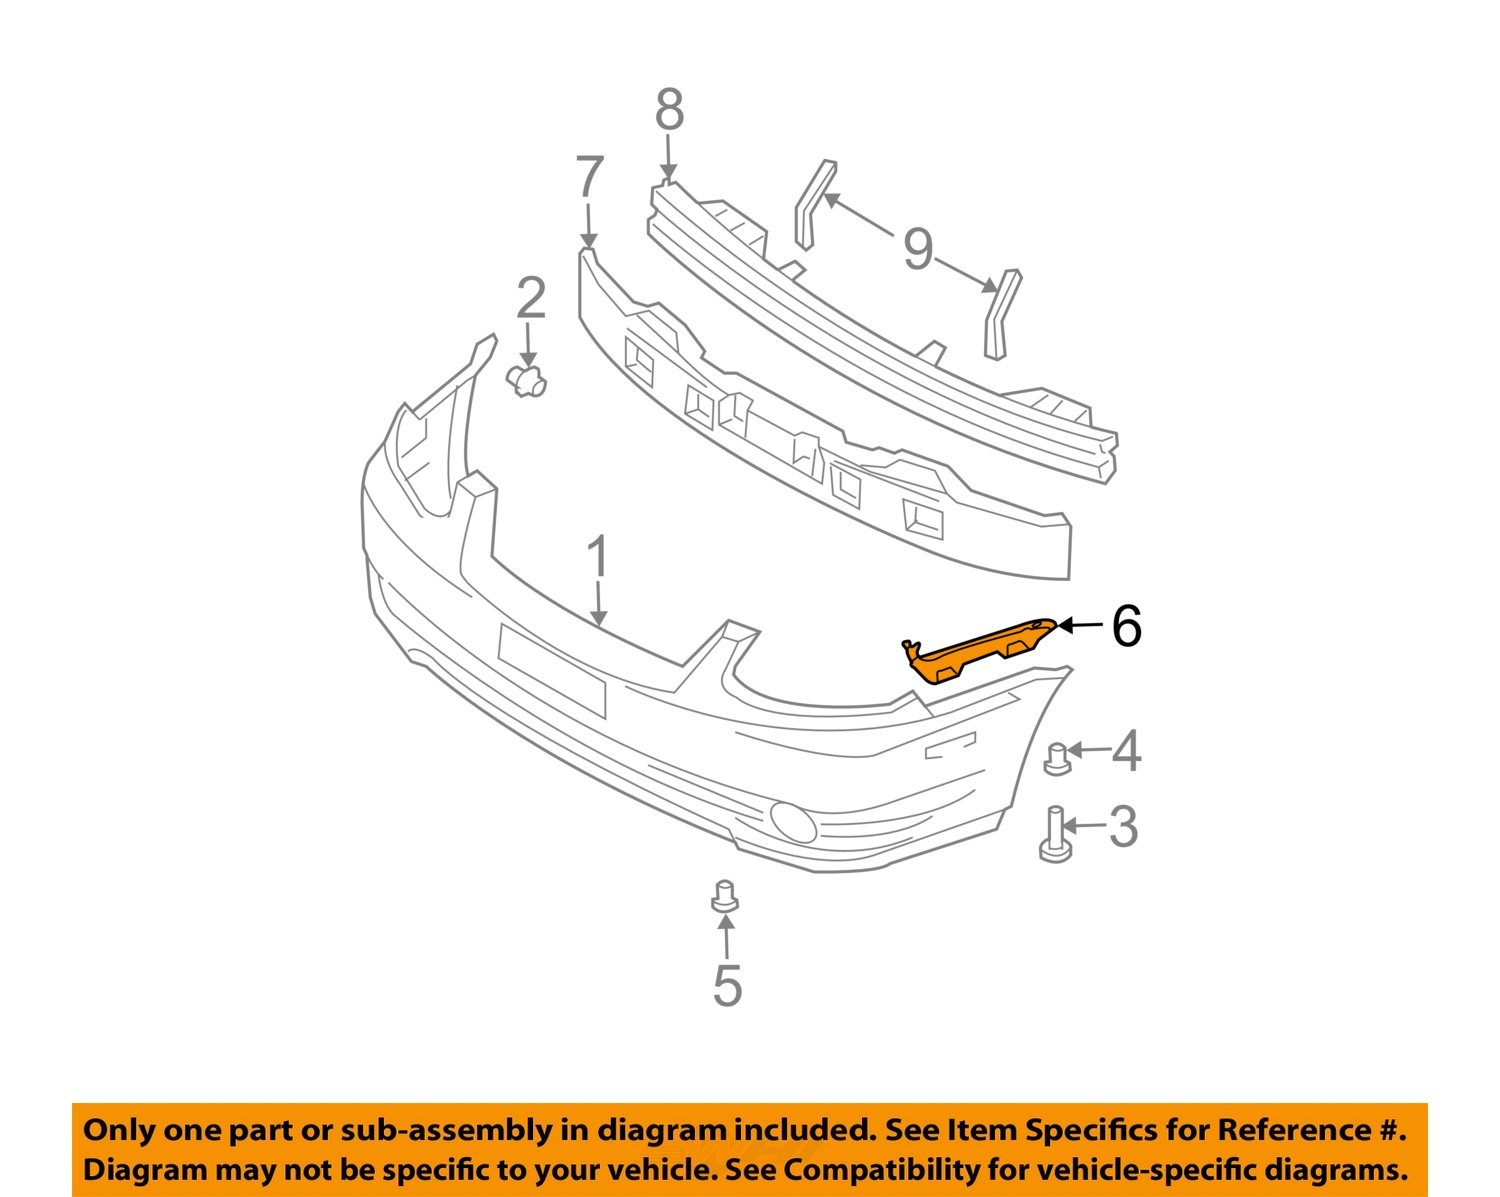 2013 hyundai accent front bumper parts diagram hyundai accent temp gauge wiring diagram